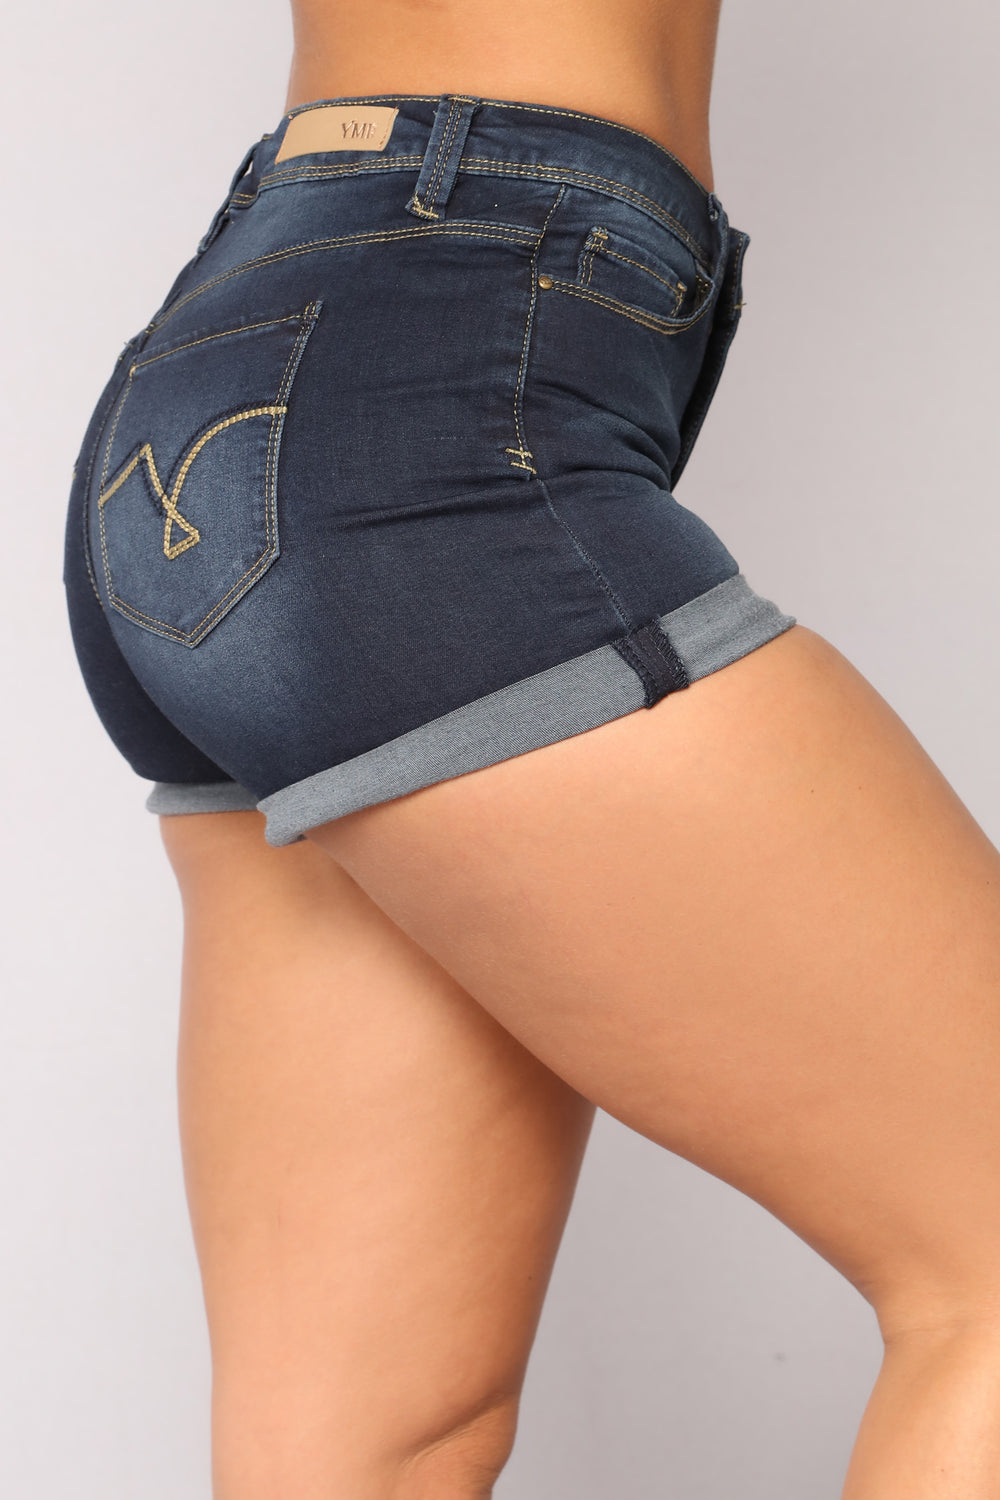 Someone Else's Arms Denim Shorts - Dark Denim